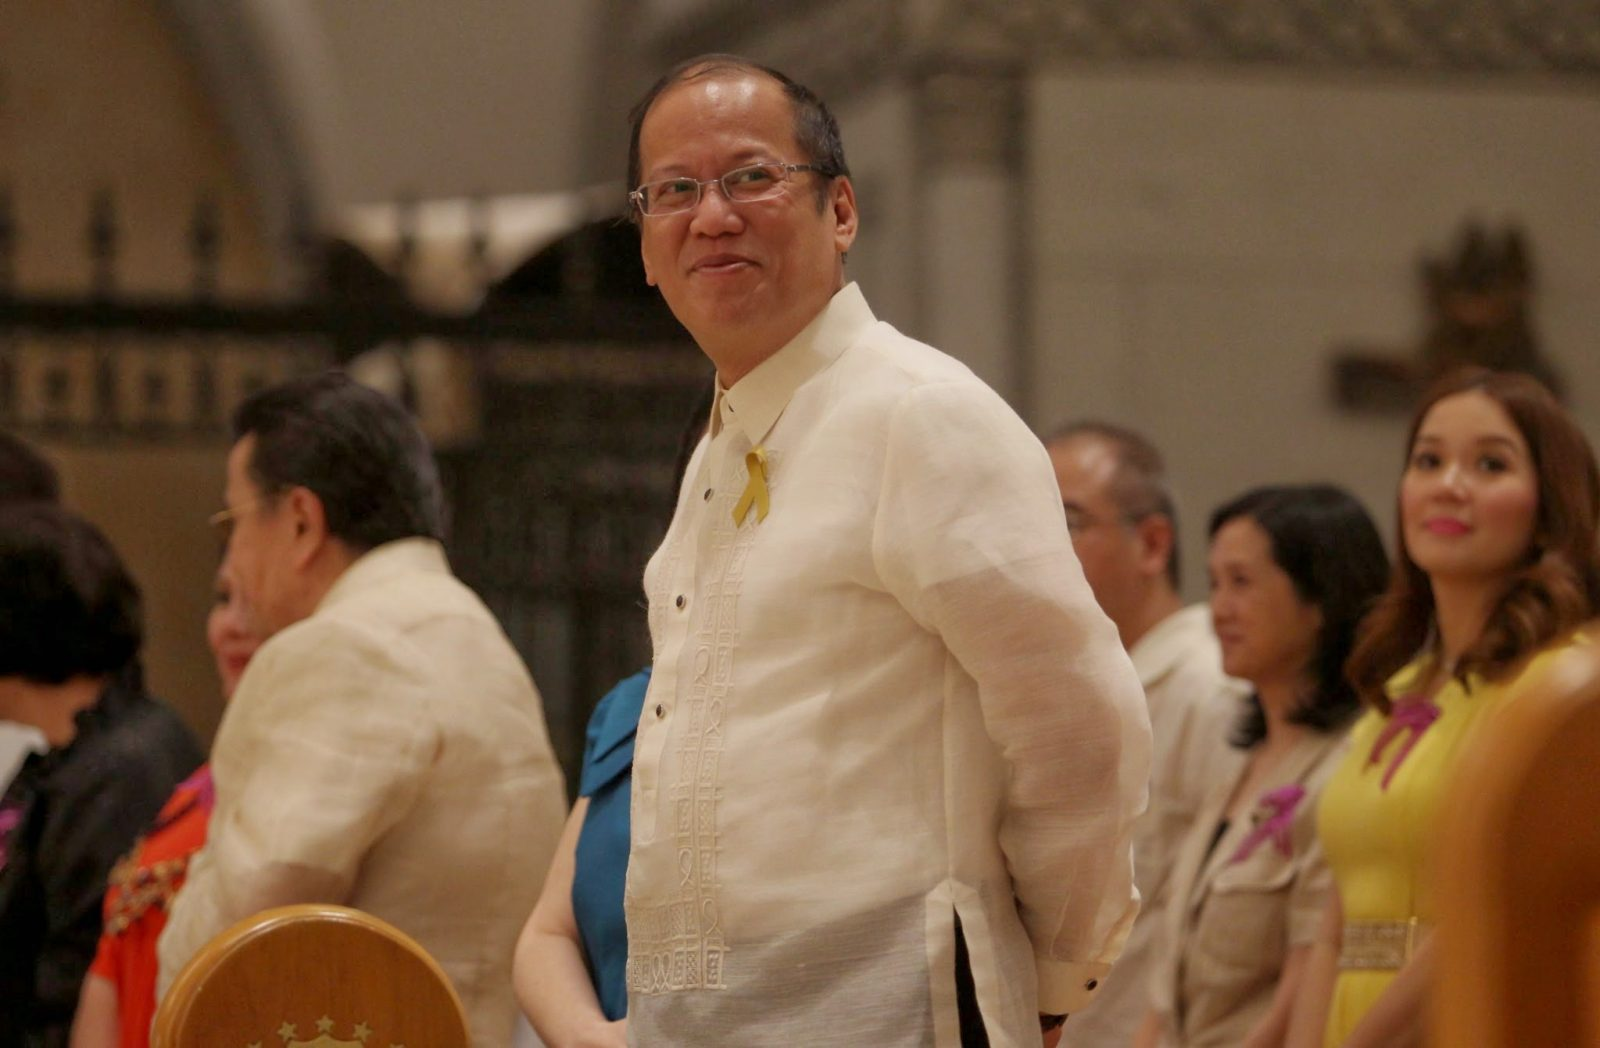 President Benigno S. Aquino III attends the Thanksgiving Mass for the reopening of the Cathedral Basilica of the Immaculate Conception (Manila Cathedral) in Cabildo corner Beaterio, Intramuros, Manila City on Wednesday night (April 9). Photo by Roberto Viñas / Malacañang Photo Bureau.